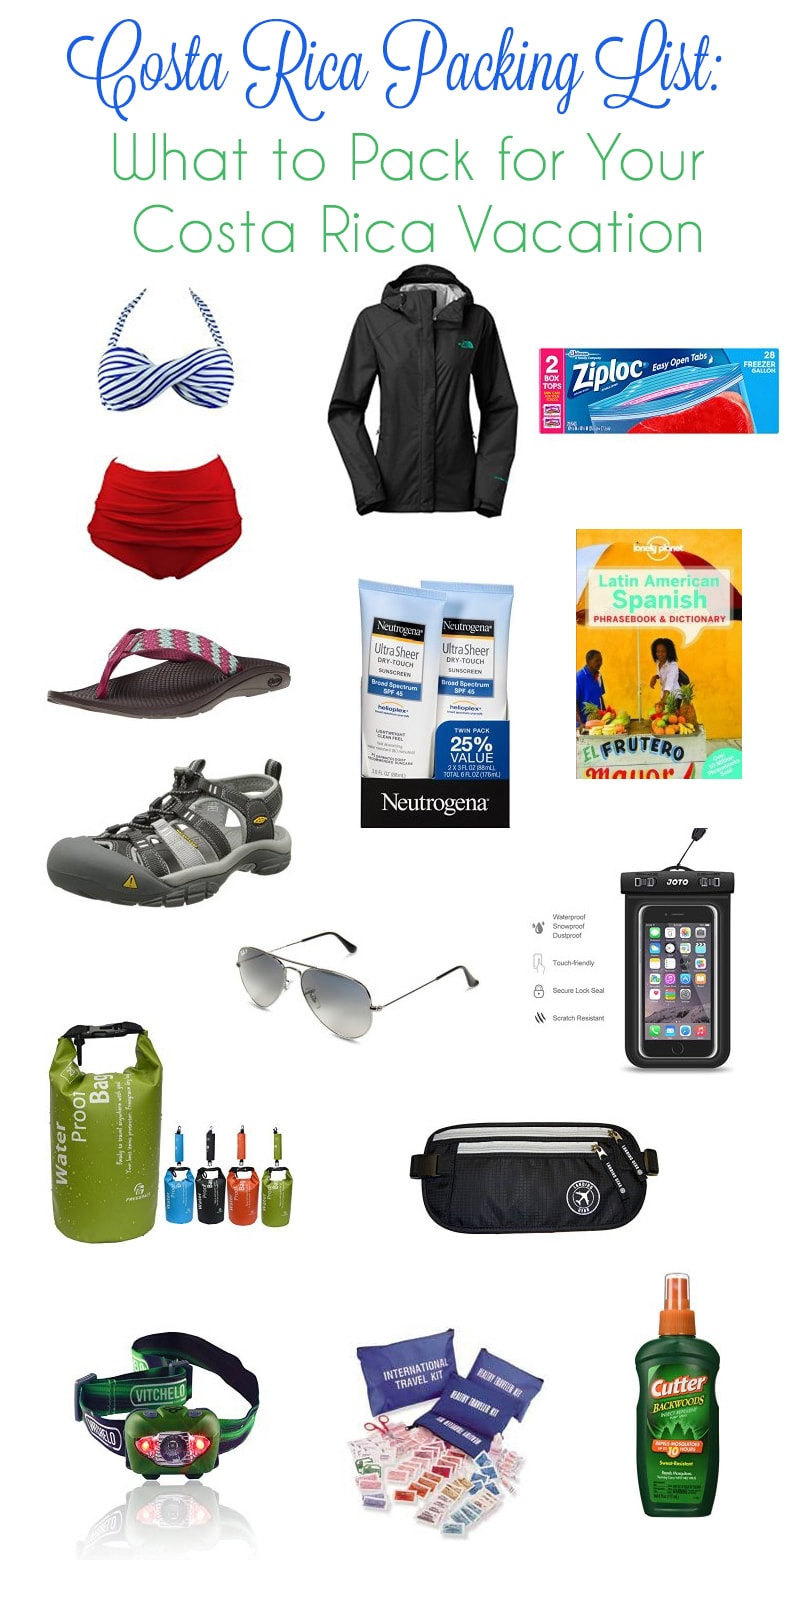 Costa Rica Packing List: What to Pack for Your Costa Rica Vacation